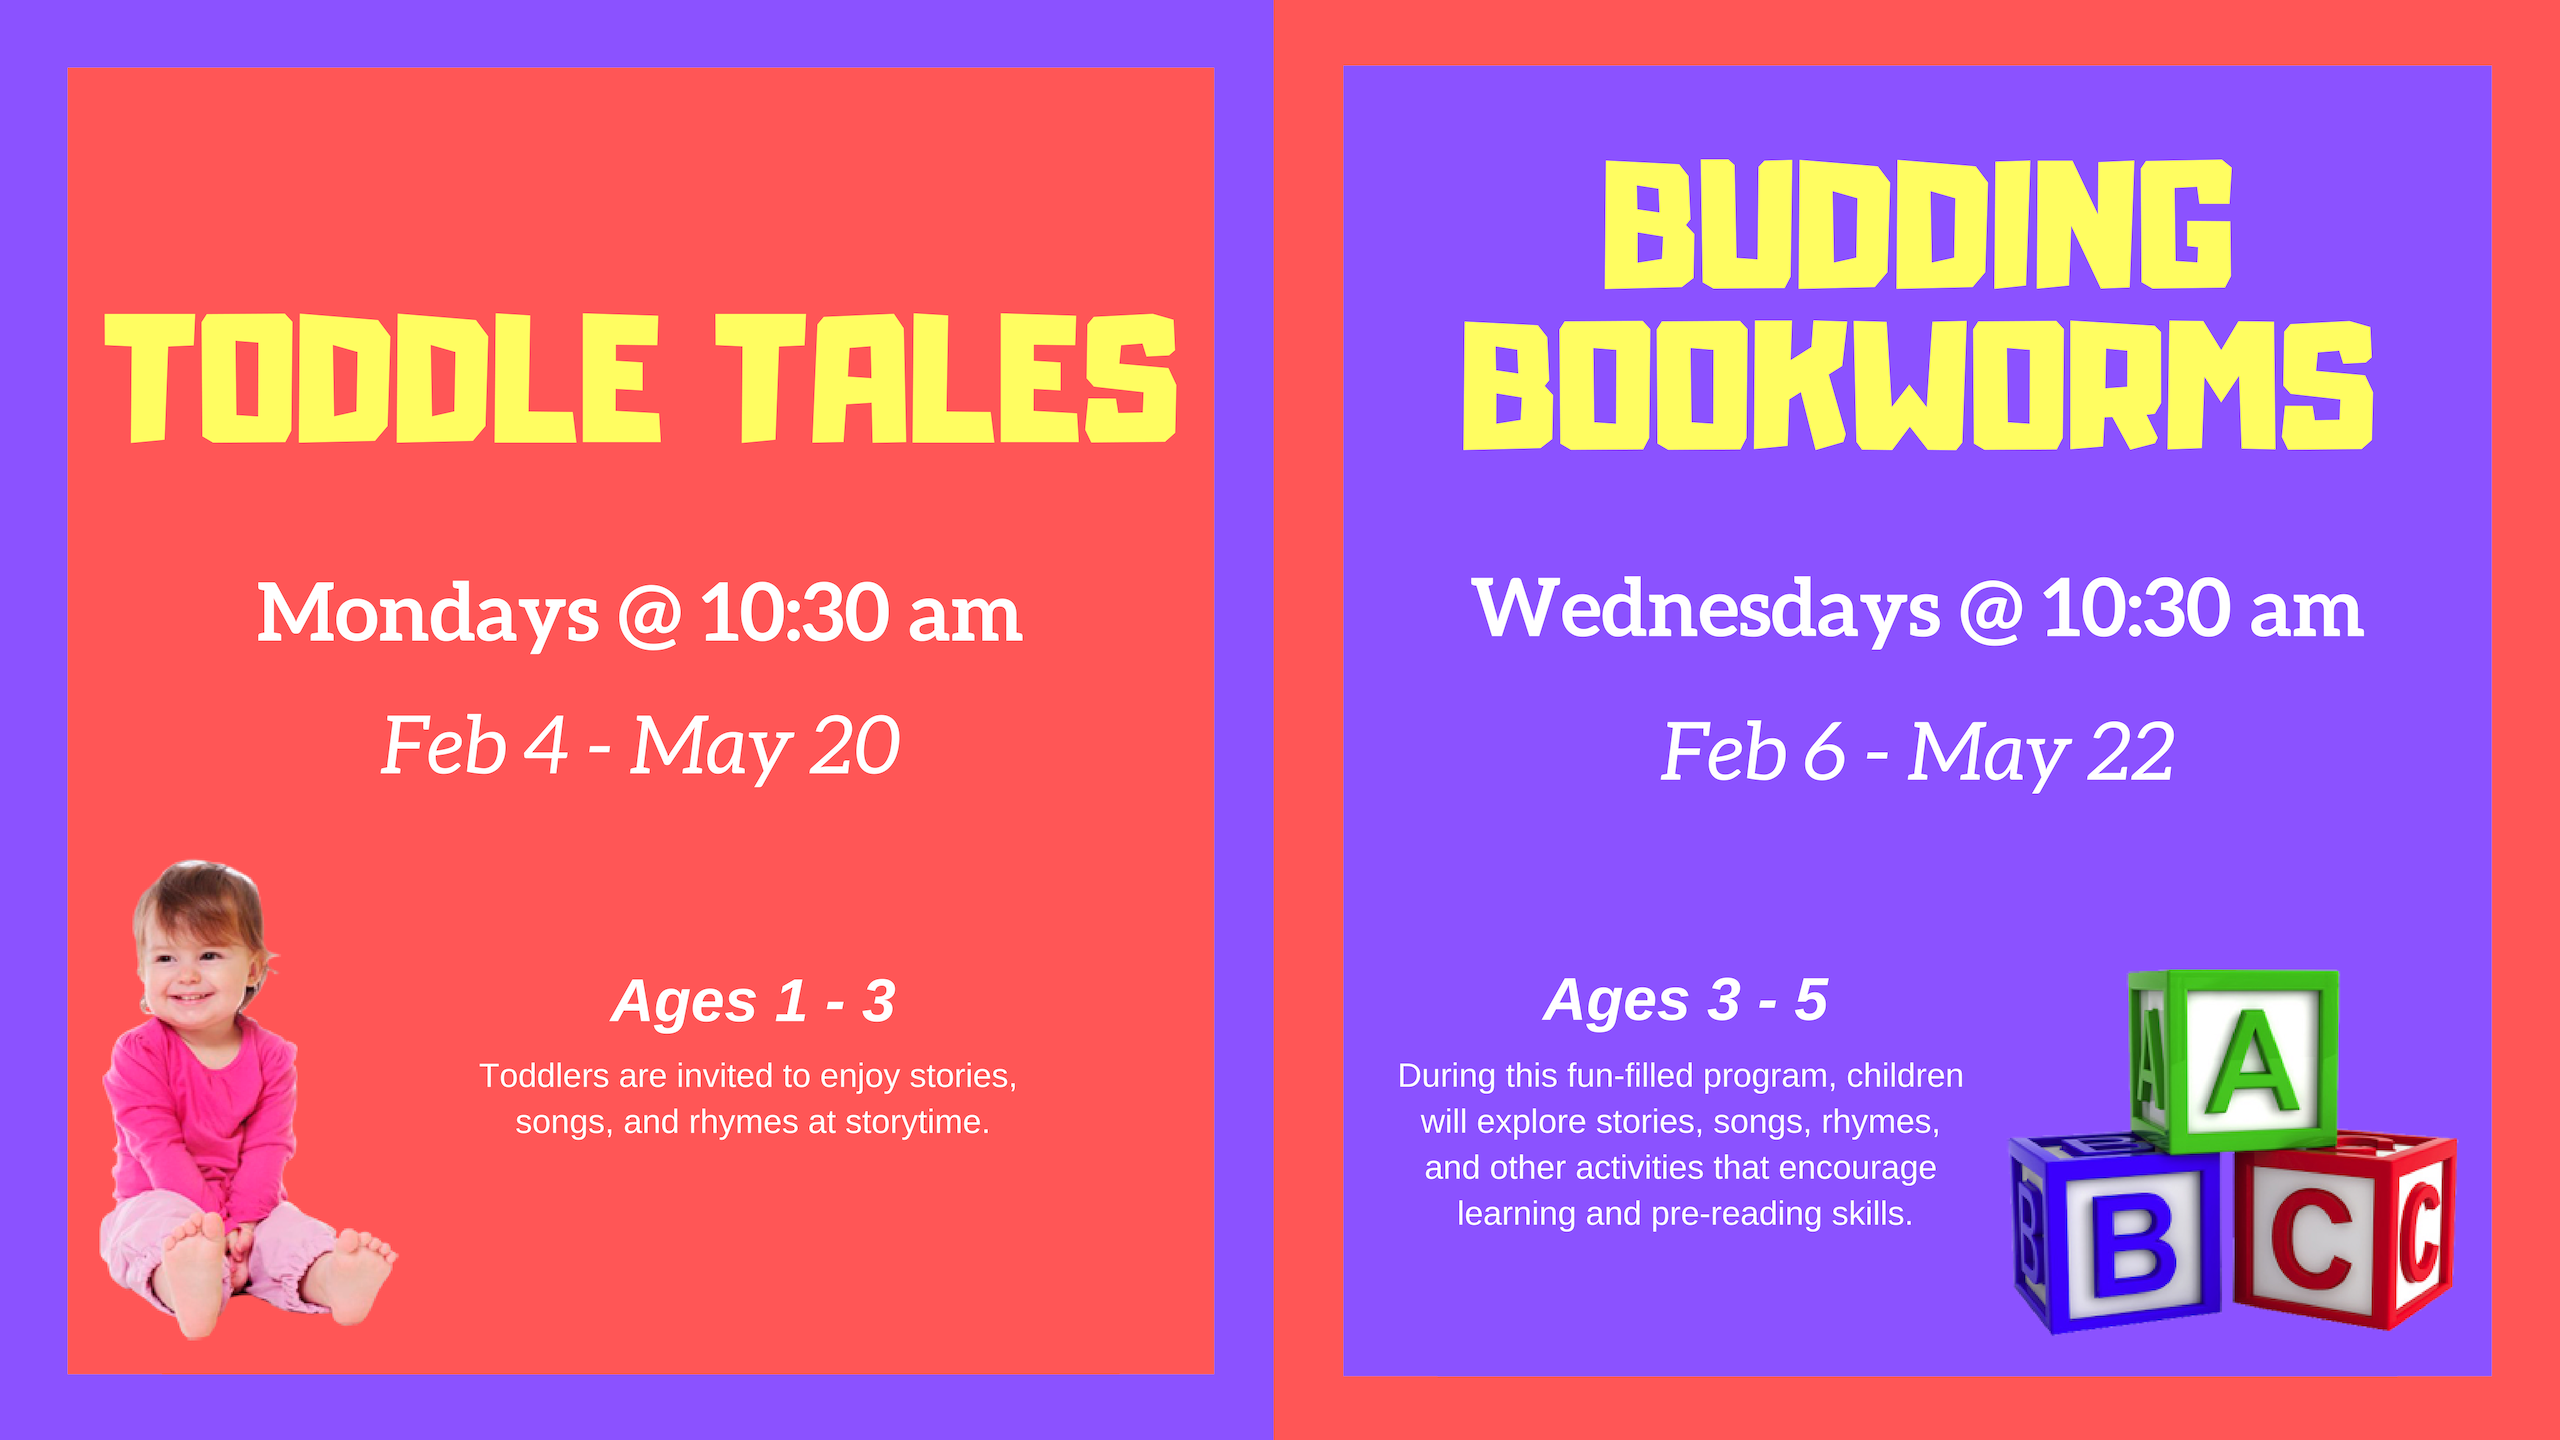 Toddle Tales   Ages 1 - 3